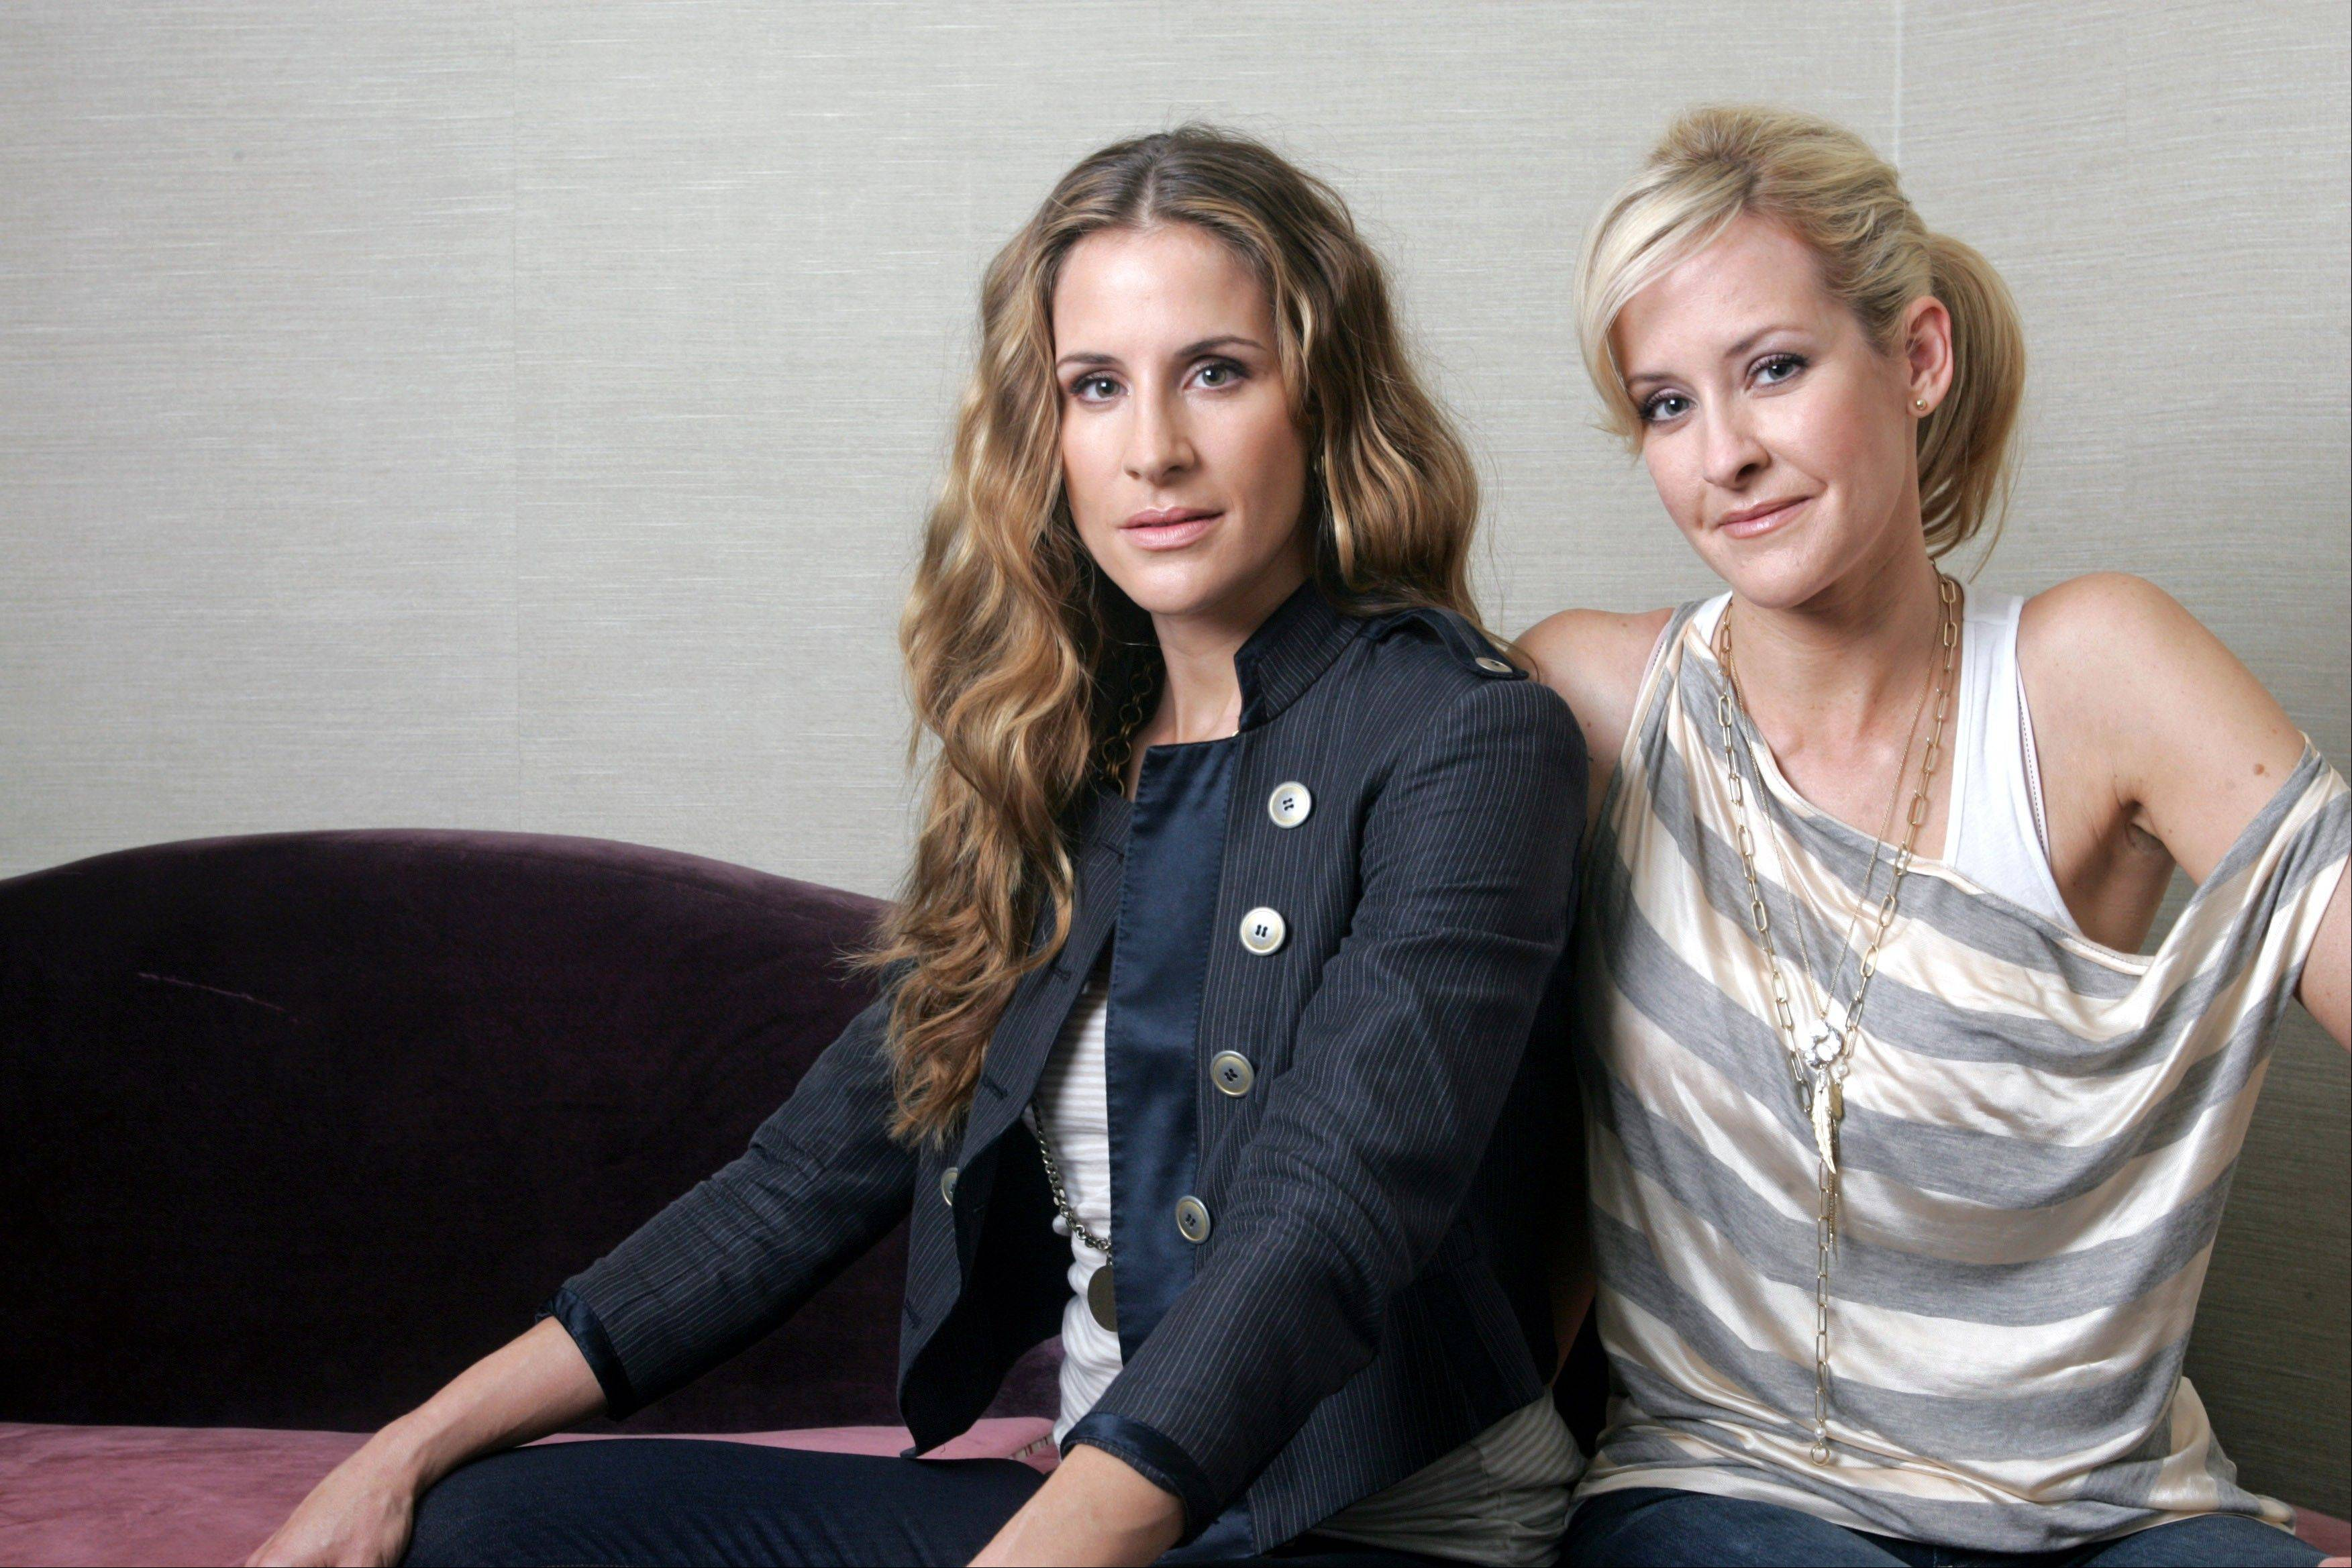 Sisters Emily Robison, left, and Martie Maguire of the Court Yard Hounds will perform a Saturday set at the Lollapalooza music festival at Grant Park in Chicago.